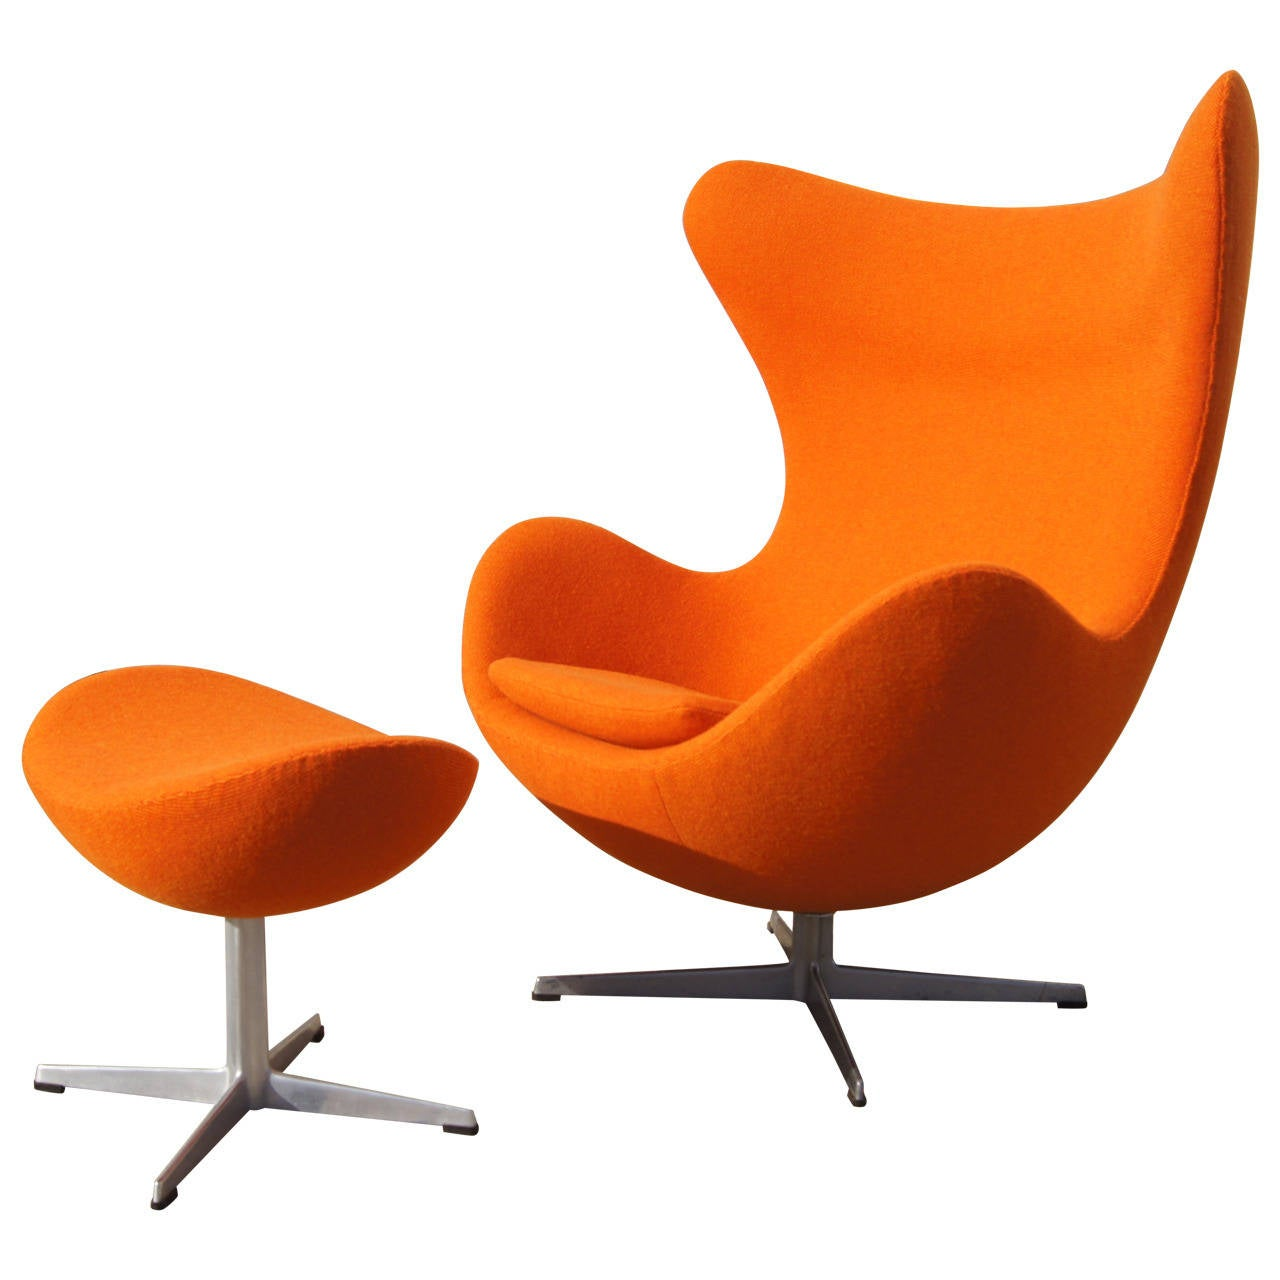 Early egg chair and ottoman by arne jacobsen at 1stdibs for Egg chair jacobsen